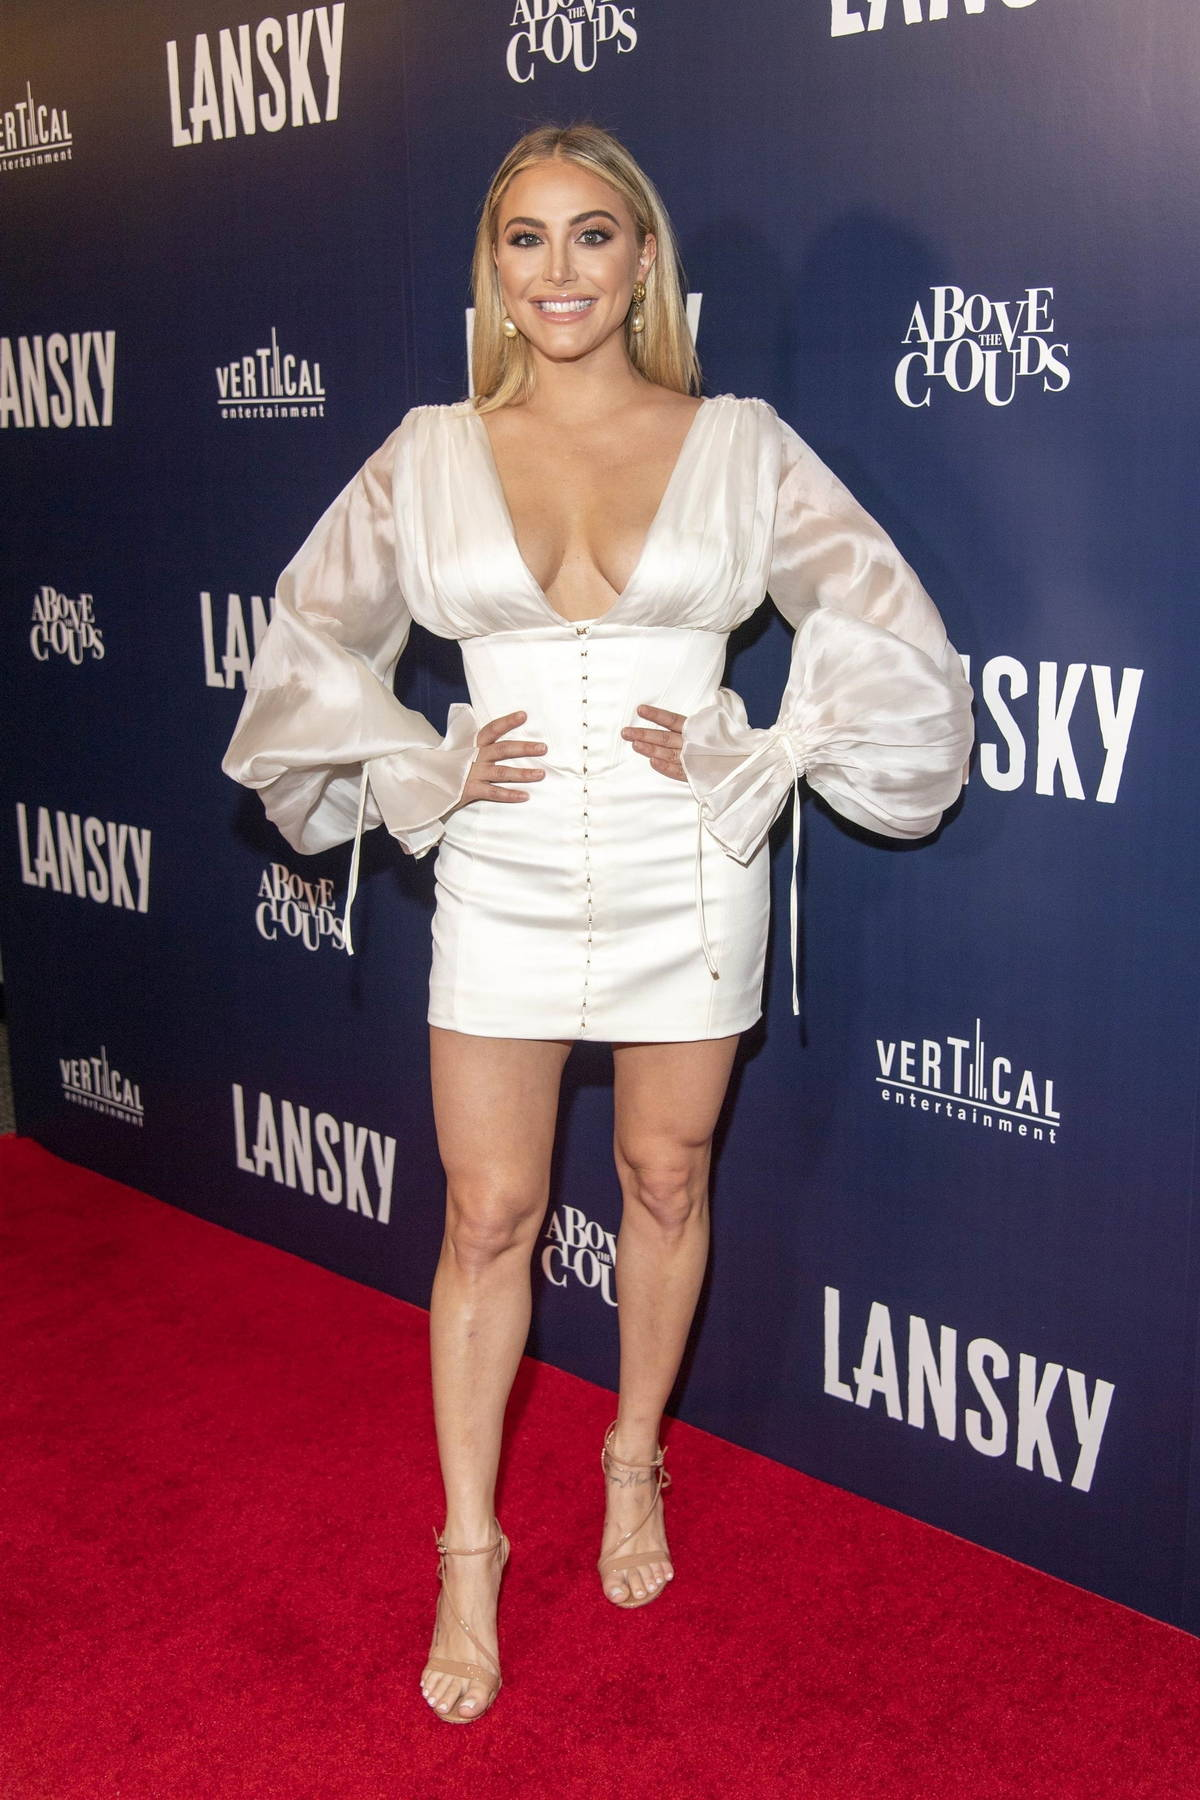 Cassie Scerbo attends the Premiere of 'Lansky' at Harmony Gold Theatre in Los Angeles